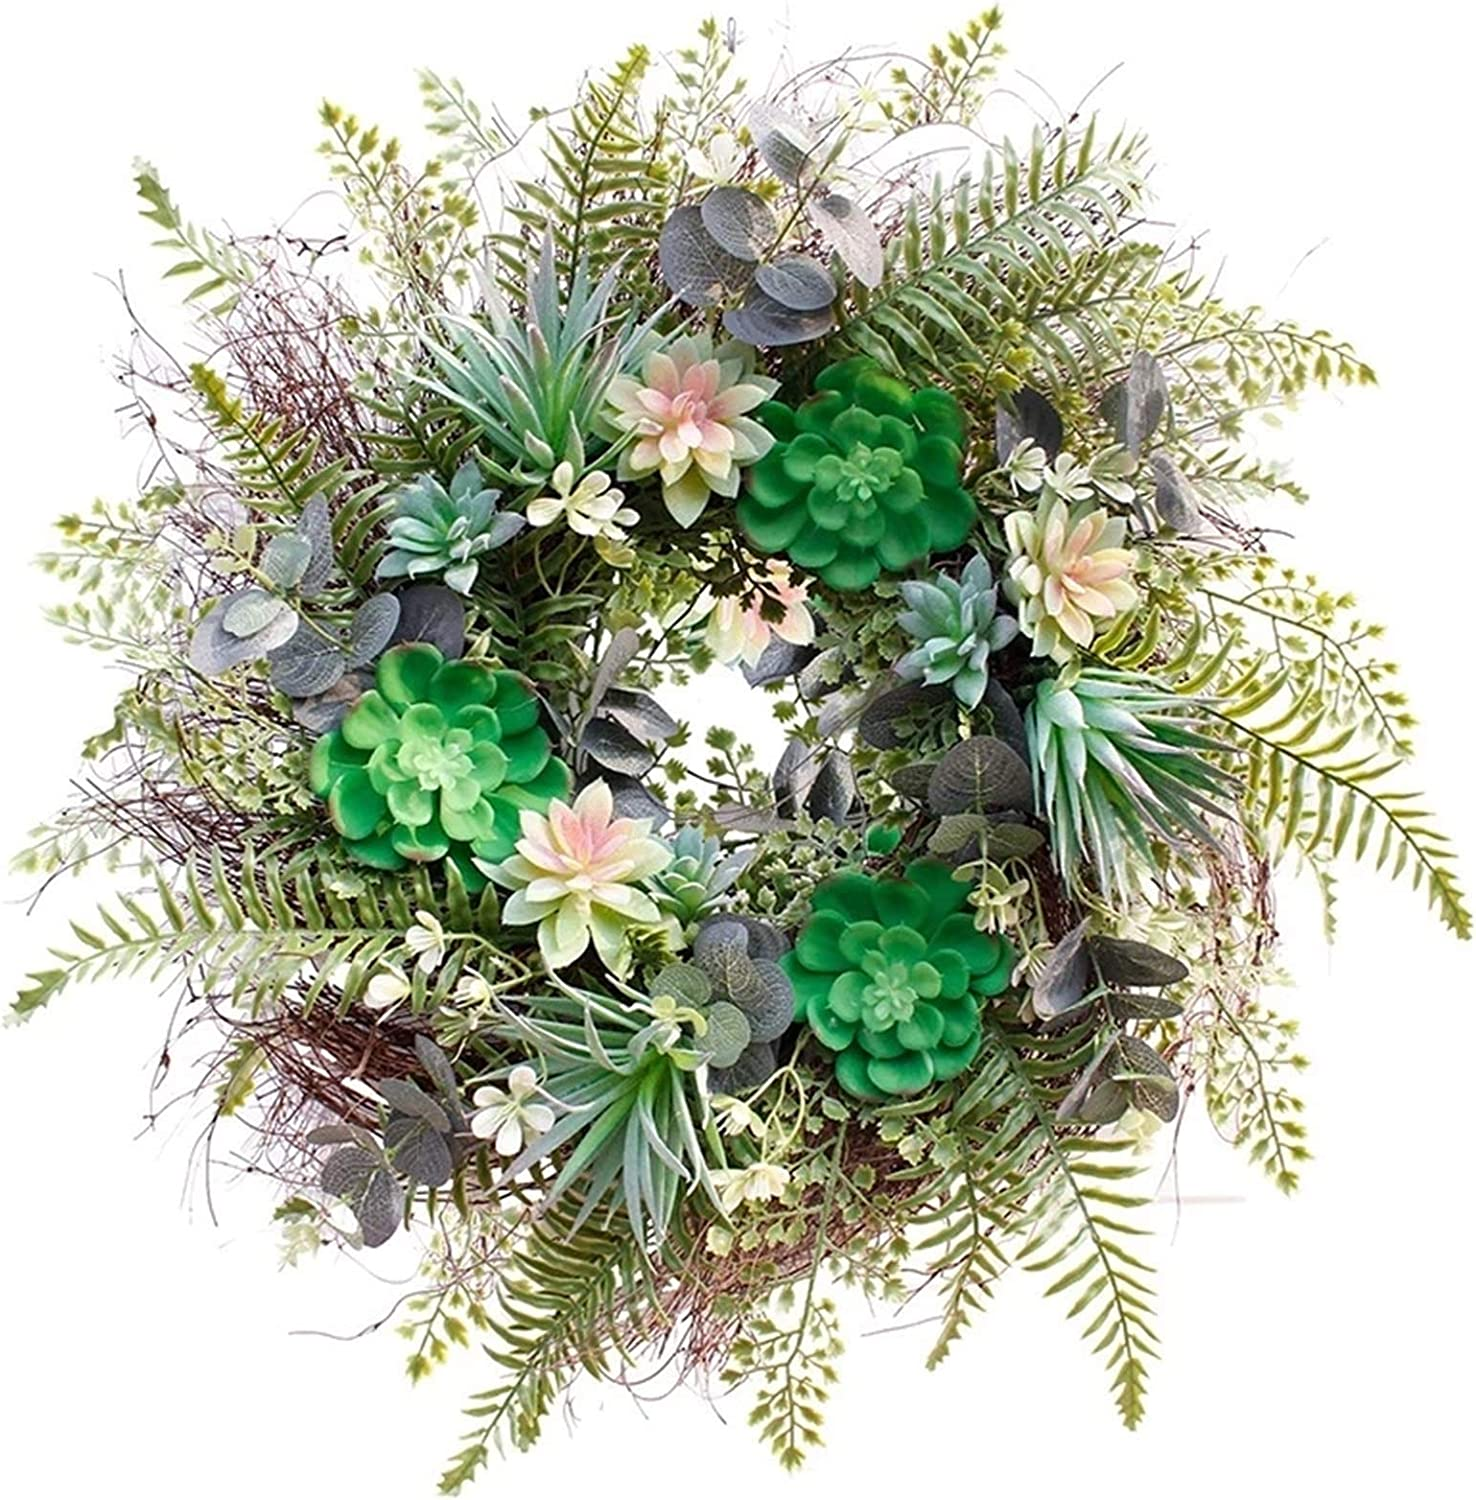 5% OFF whl Hanging Wreath 22 Inch Ranking TOP1 Succulent Artificial Fern Plan